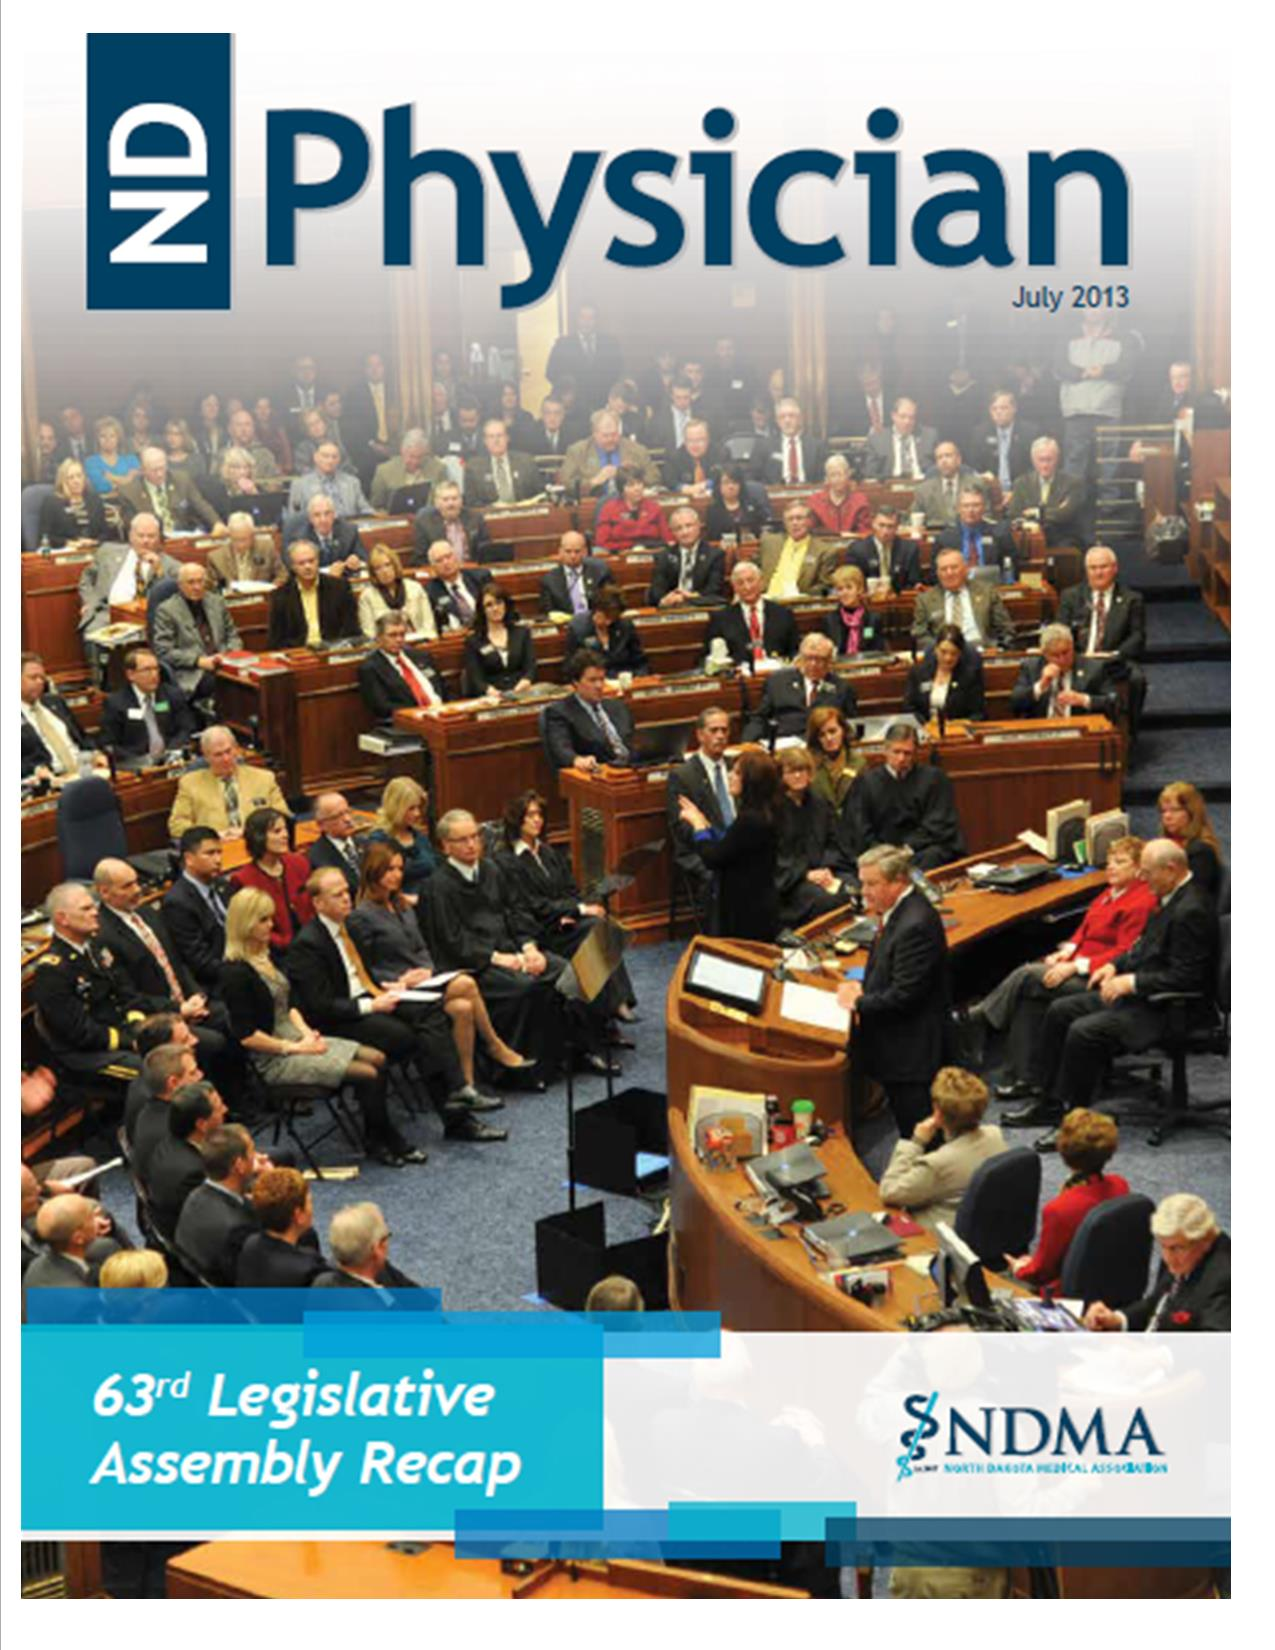 ND Physician July 2013 magazine cover